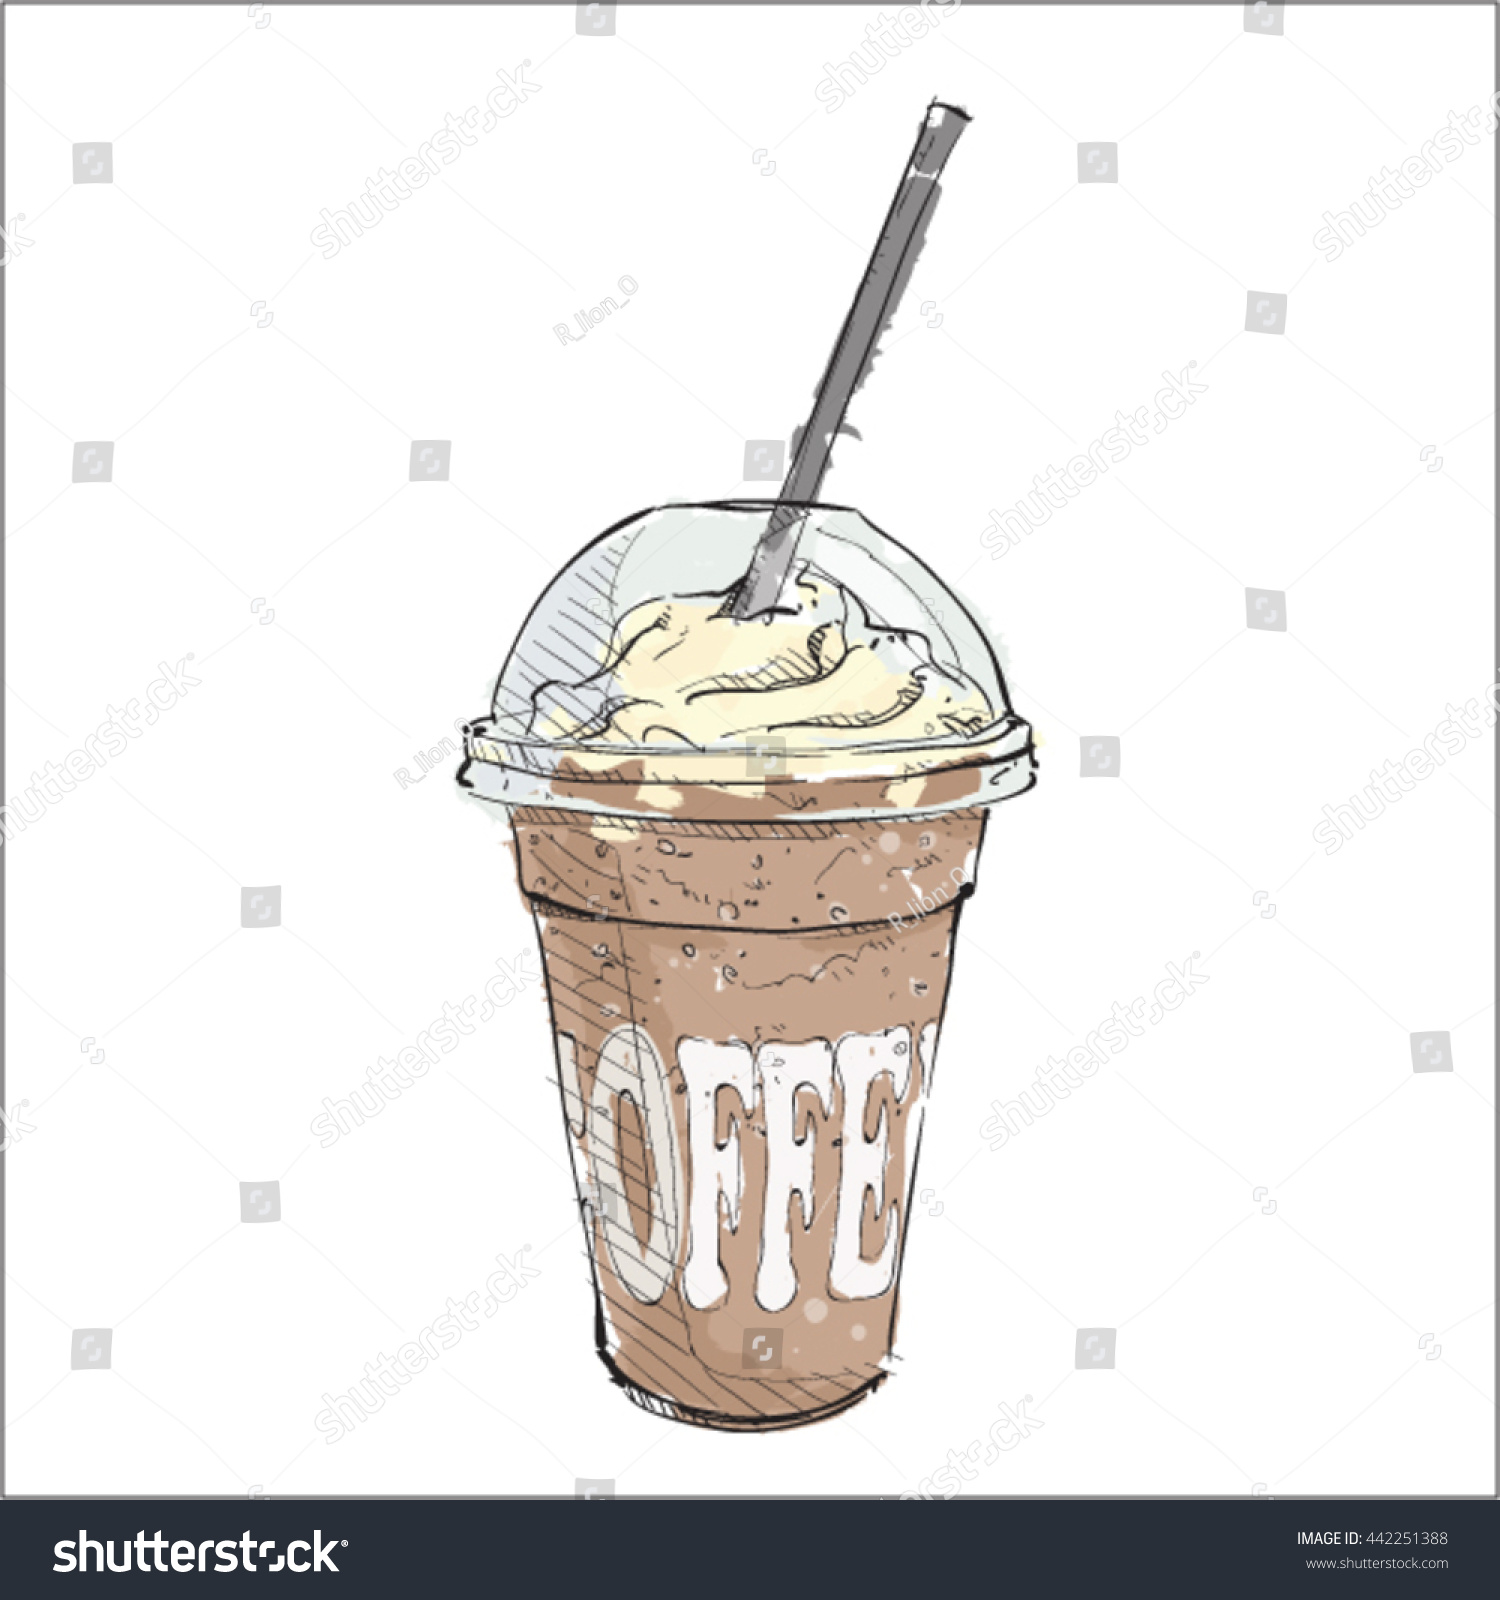 Coffee cup sketch - Watercolor Coffee Cup Sketch Style Vector